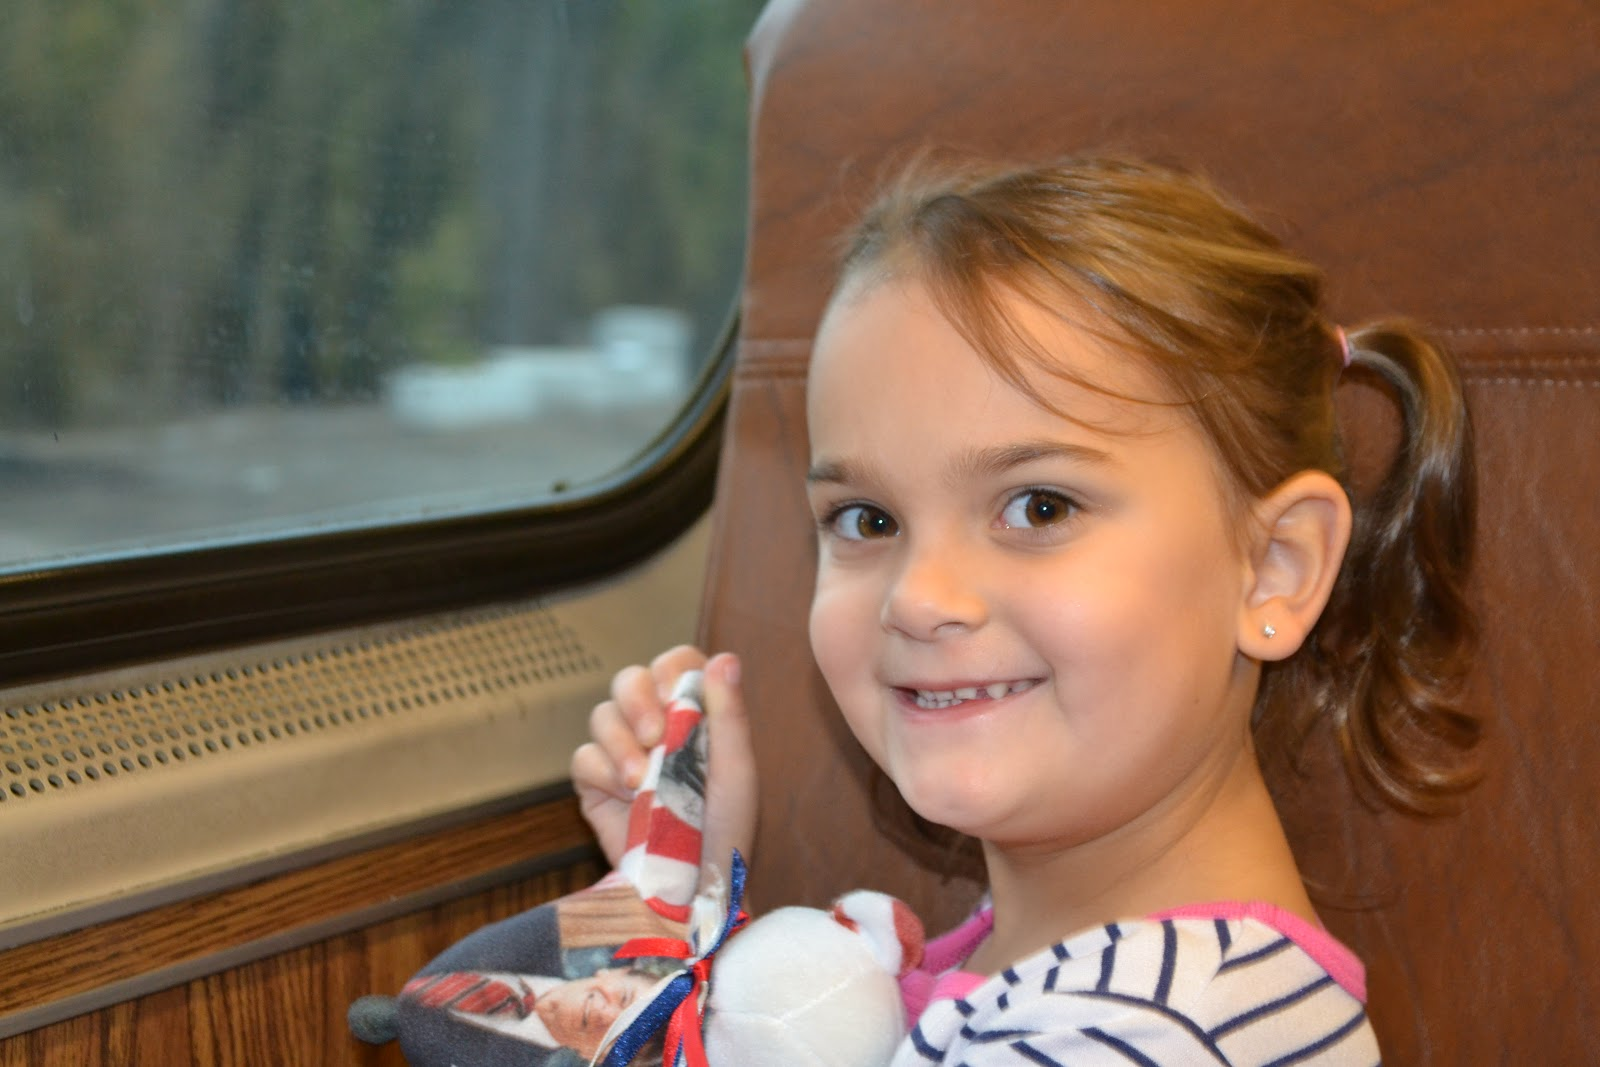 Samara took her first train ride to NYC and we went with my friend Selena and her daughter Jenna.